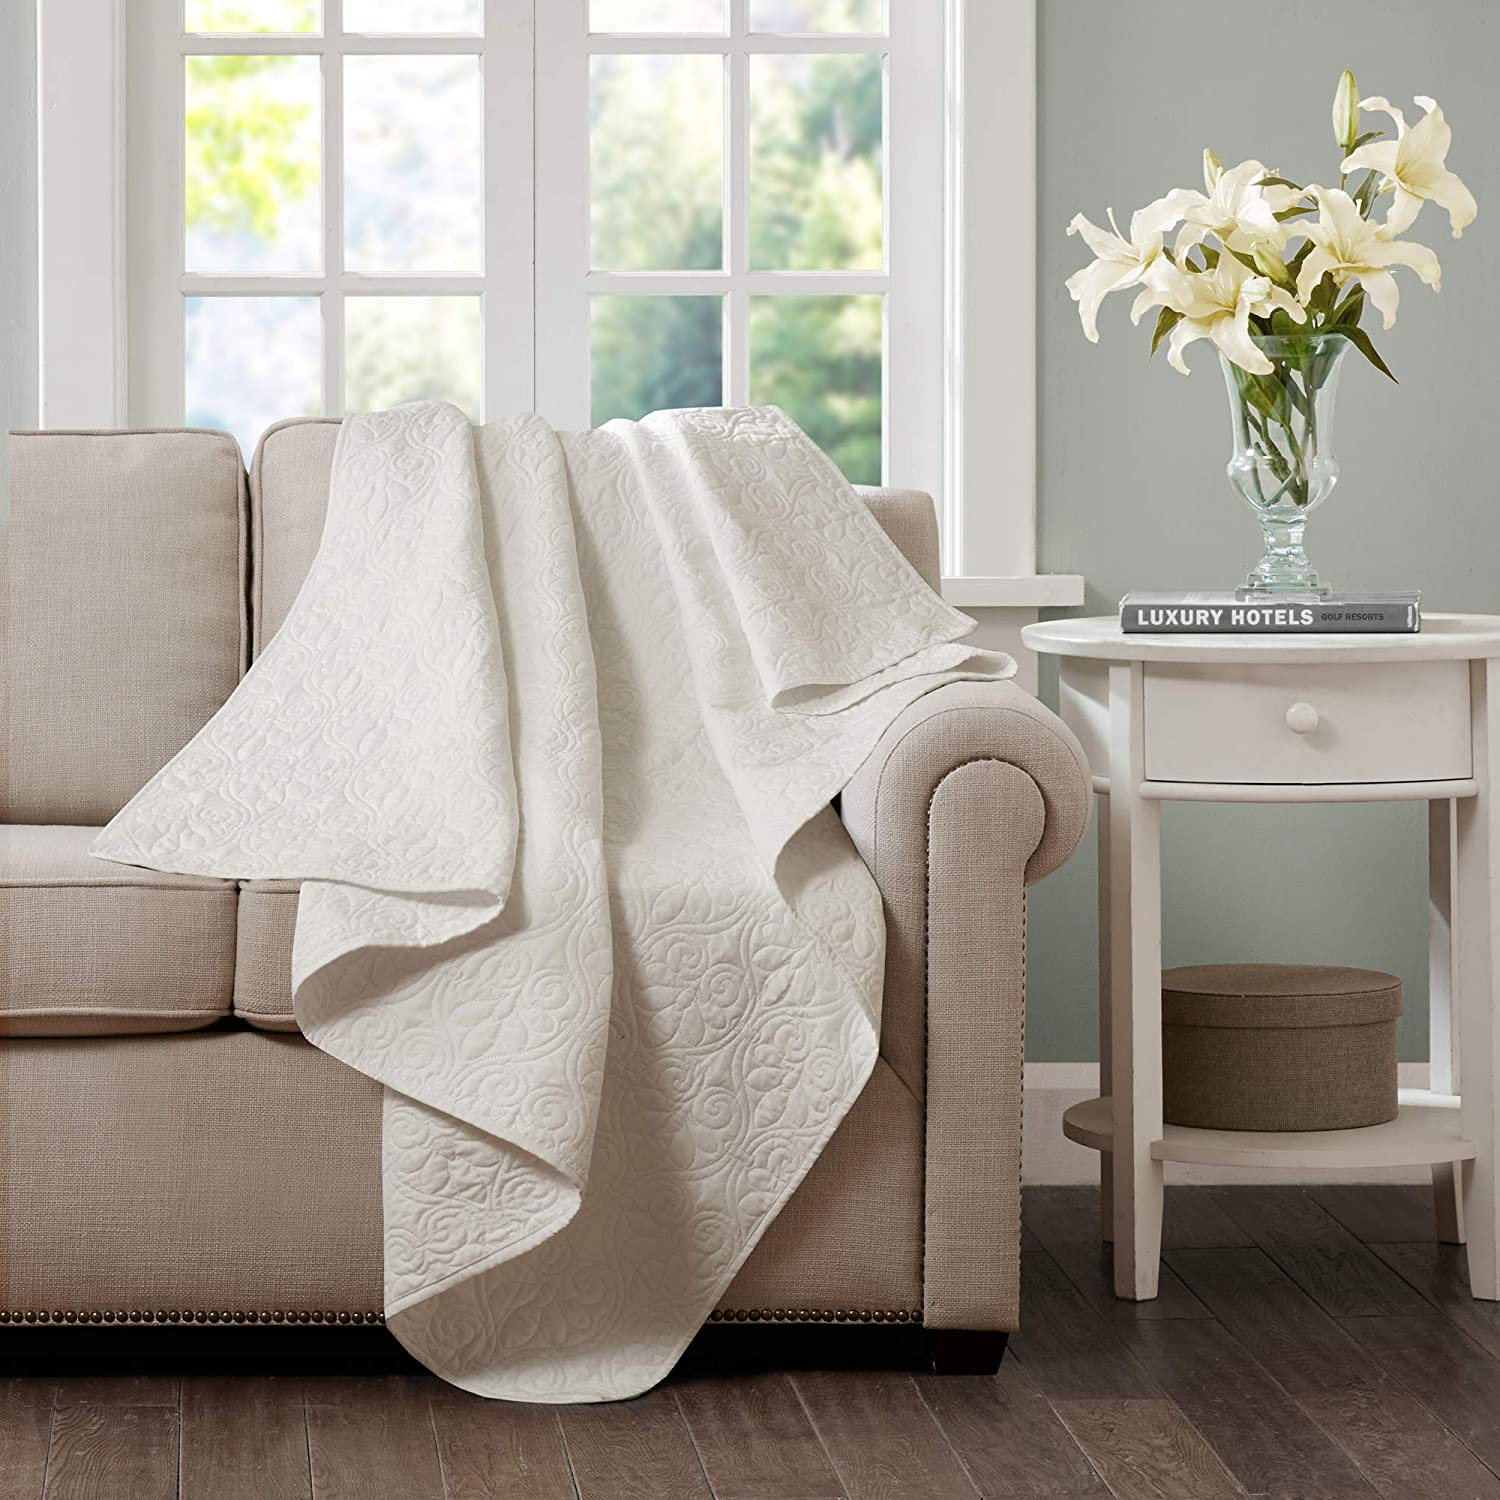 Quebec Oversized Quilted Throw 60x70